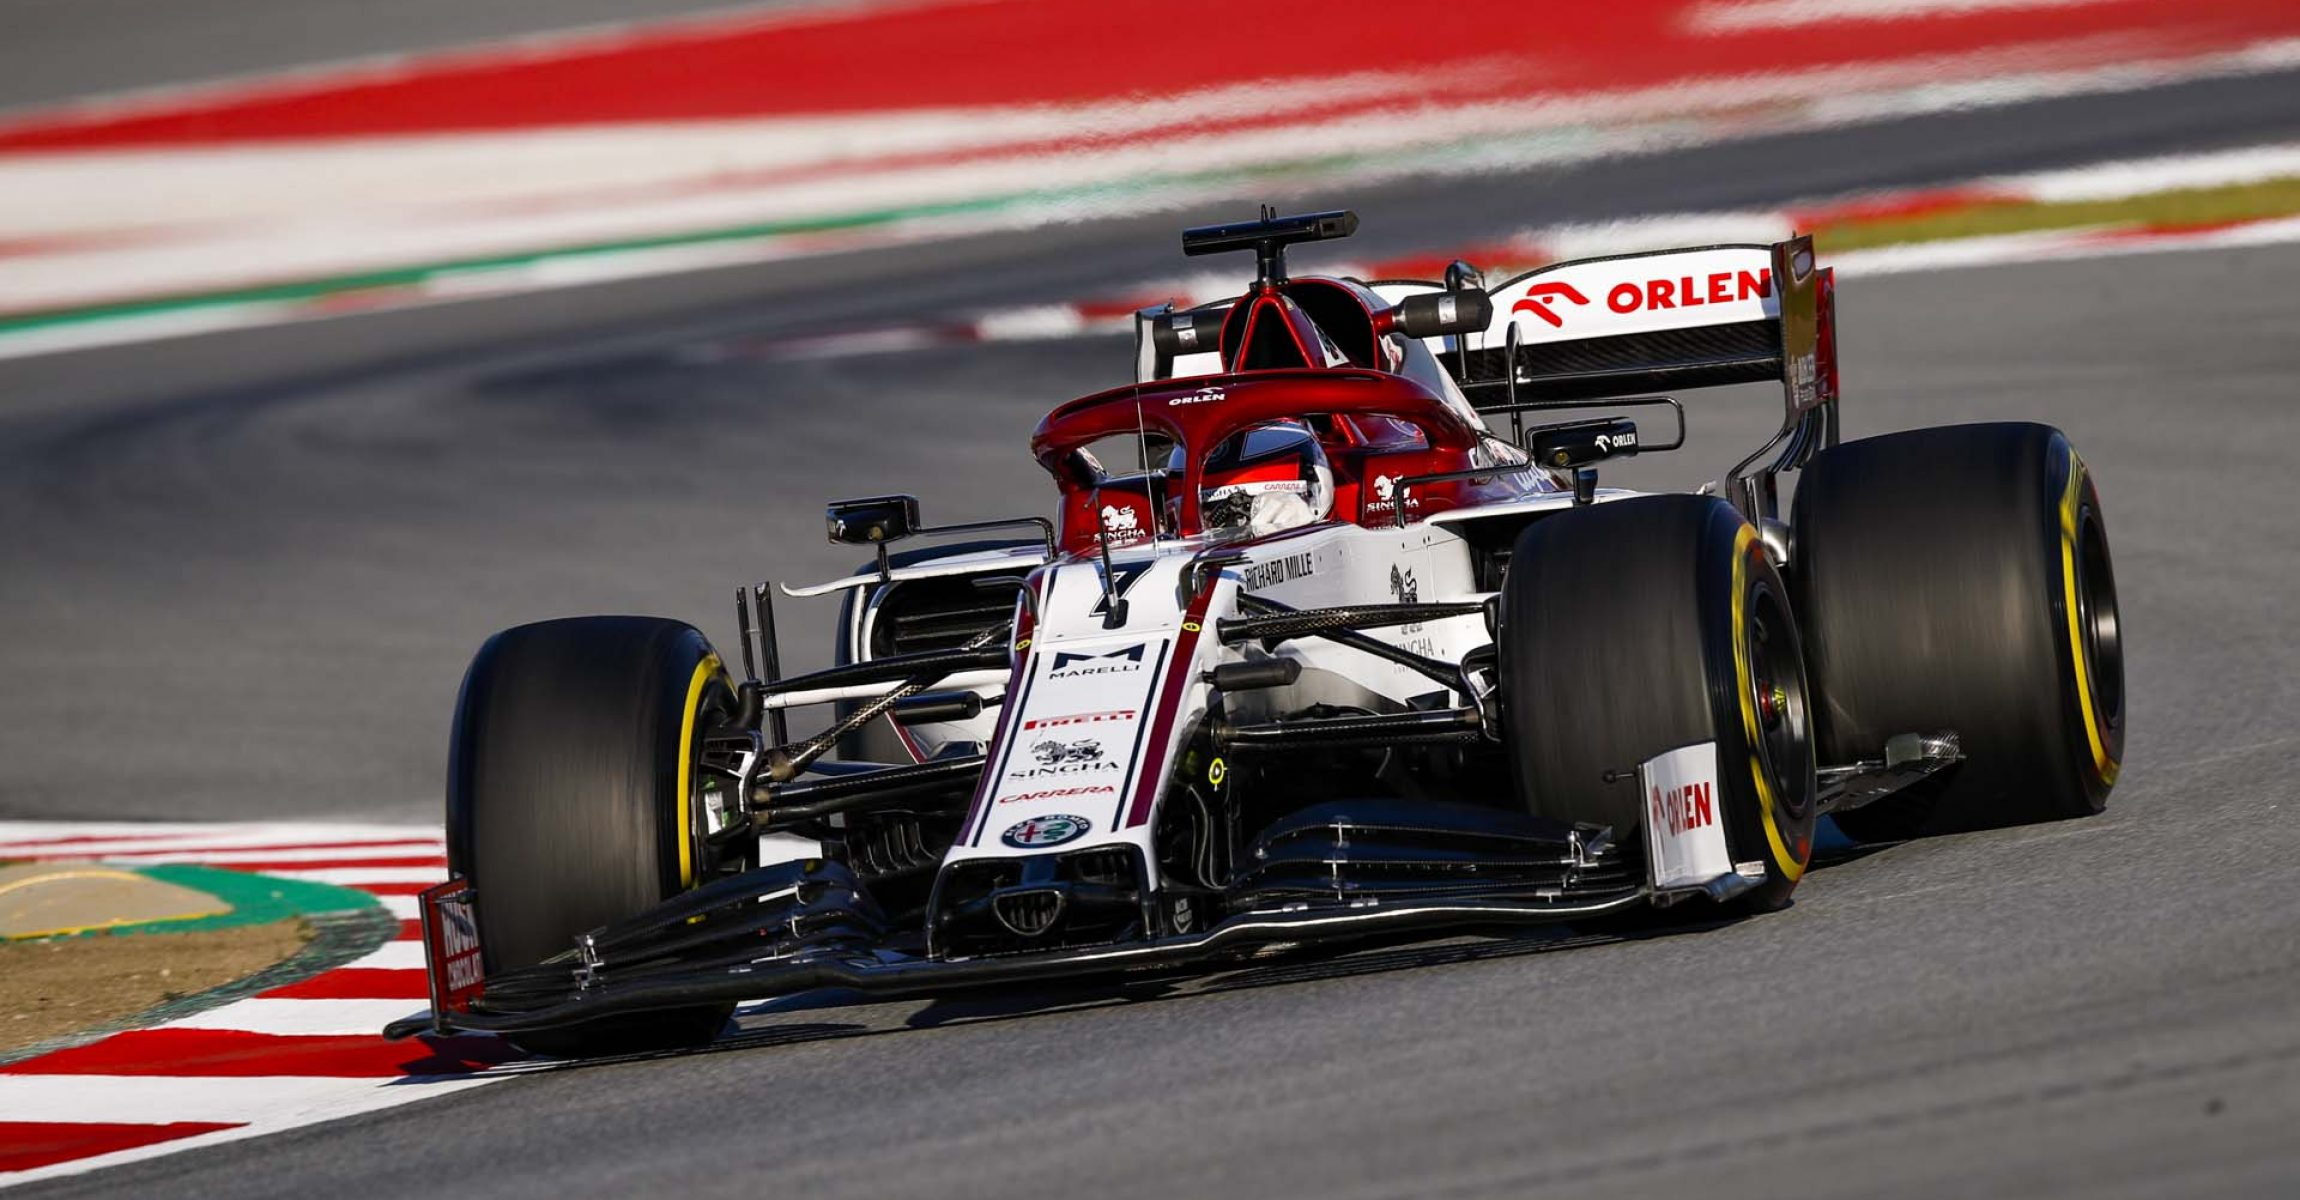 RAIKKONEN Kimi Räikkönen (fin), Alfa Romeo Racing C39, action during the second session of the Formula 1 Pre-season testing 2020 from February 26 to 28, 2020 on the Circuit de Barcelona-Catalunya, in Montmelo, Barcelona, Spain - Photo Florent Gooden / DPPI